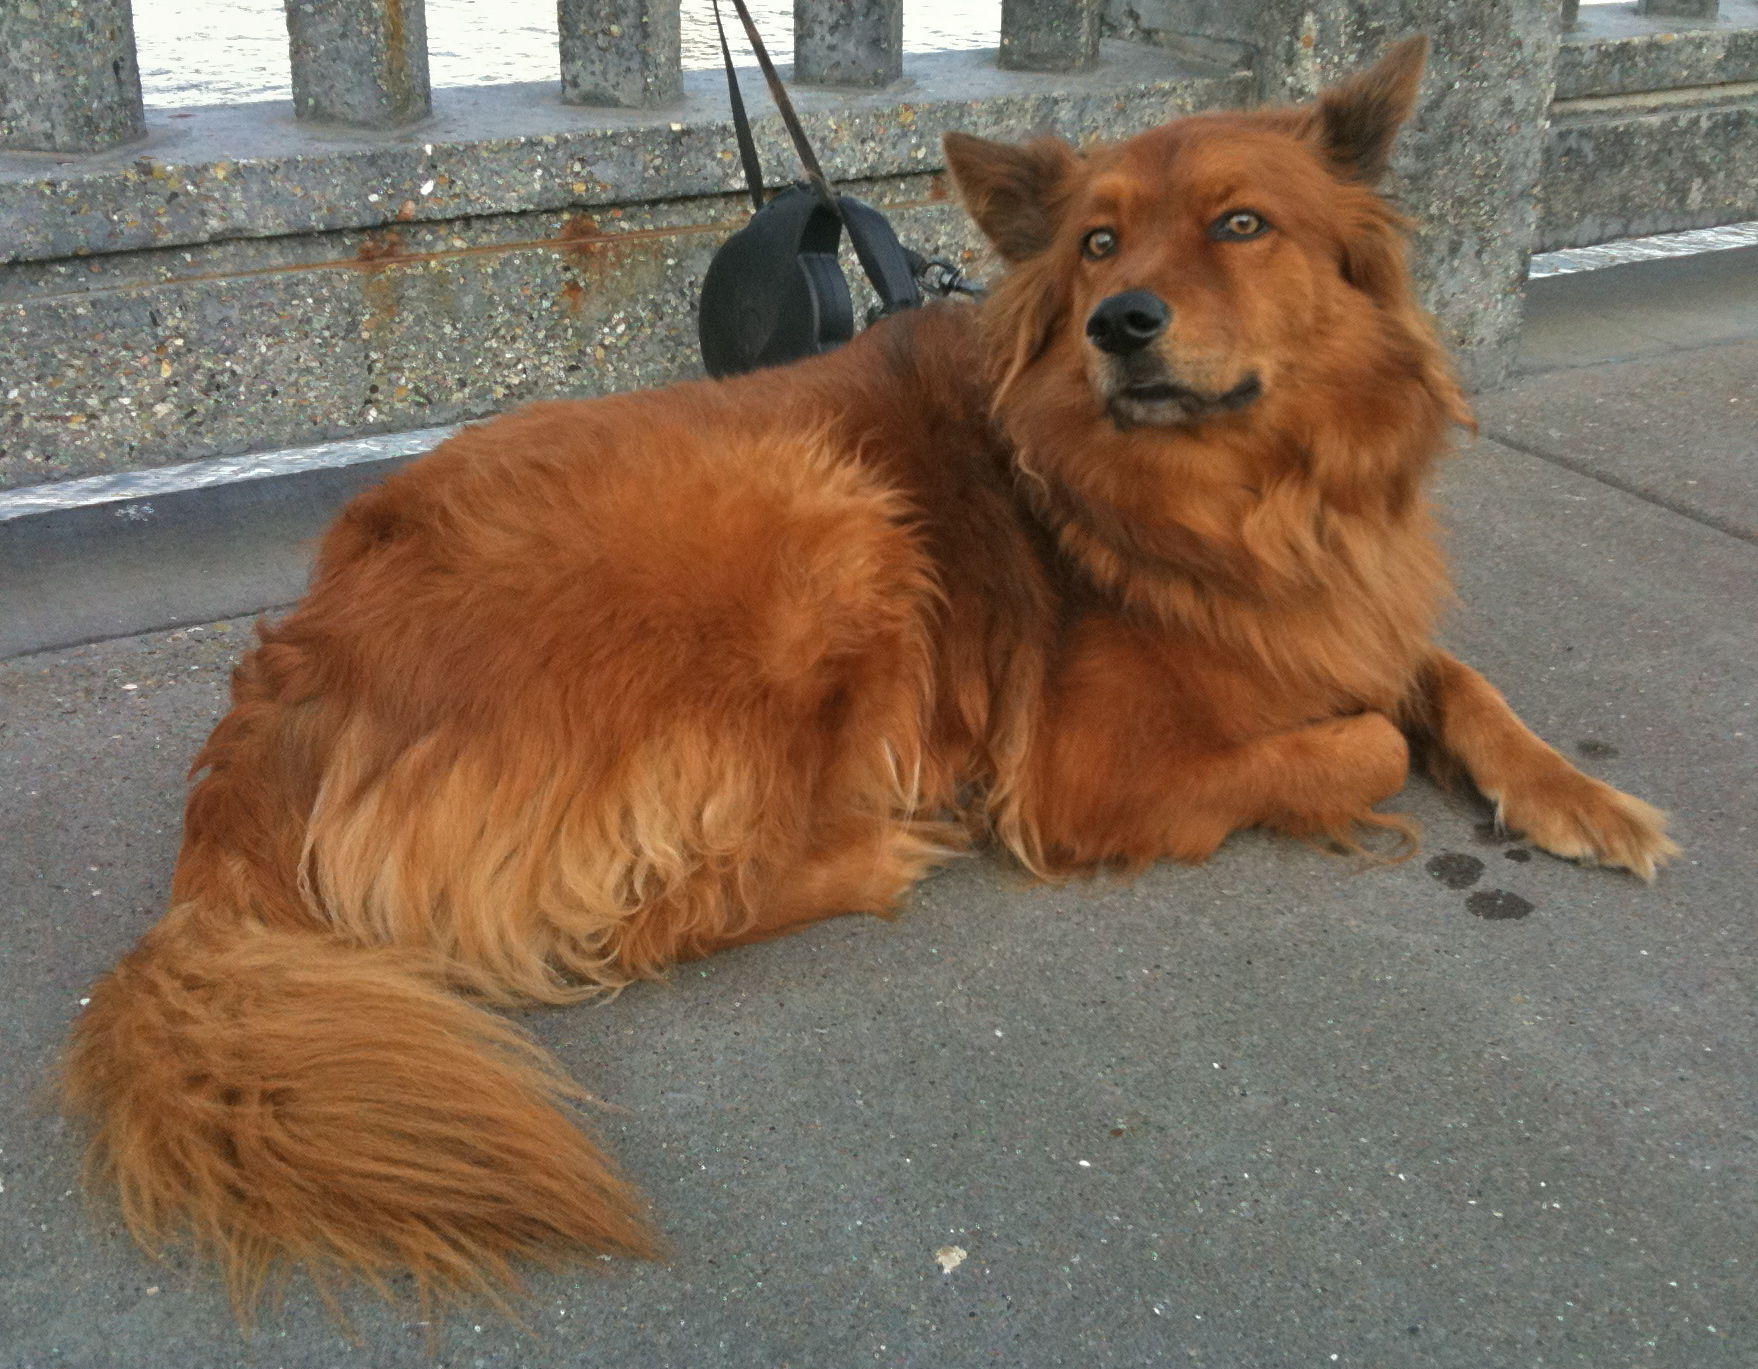 Caption: The words for fox in Irish are, literally, 'red dog' ('madra rua'). This must be the one they were thinking of. Image credit: The Dogs of San Francisco